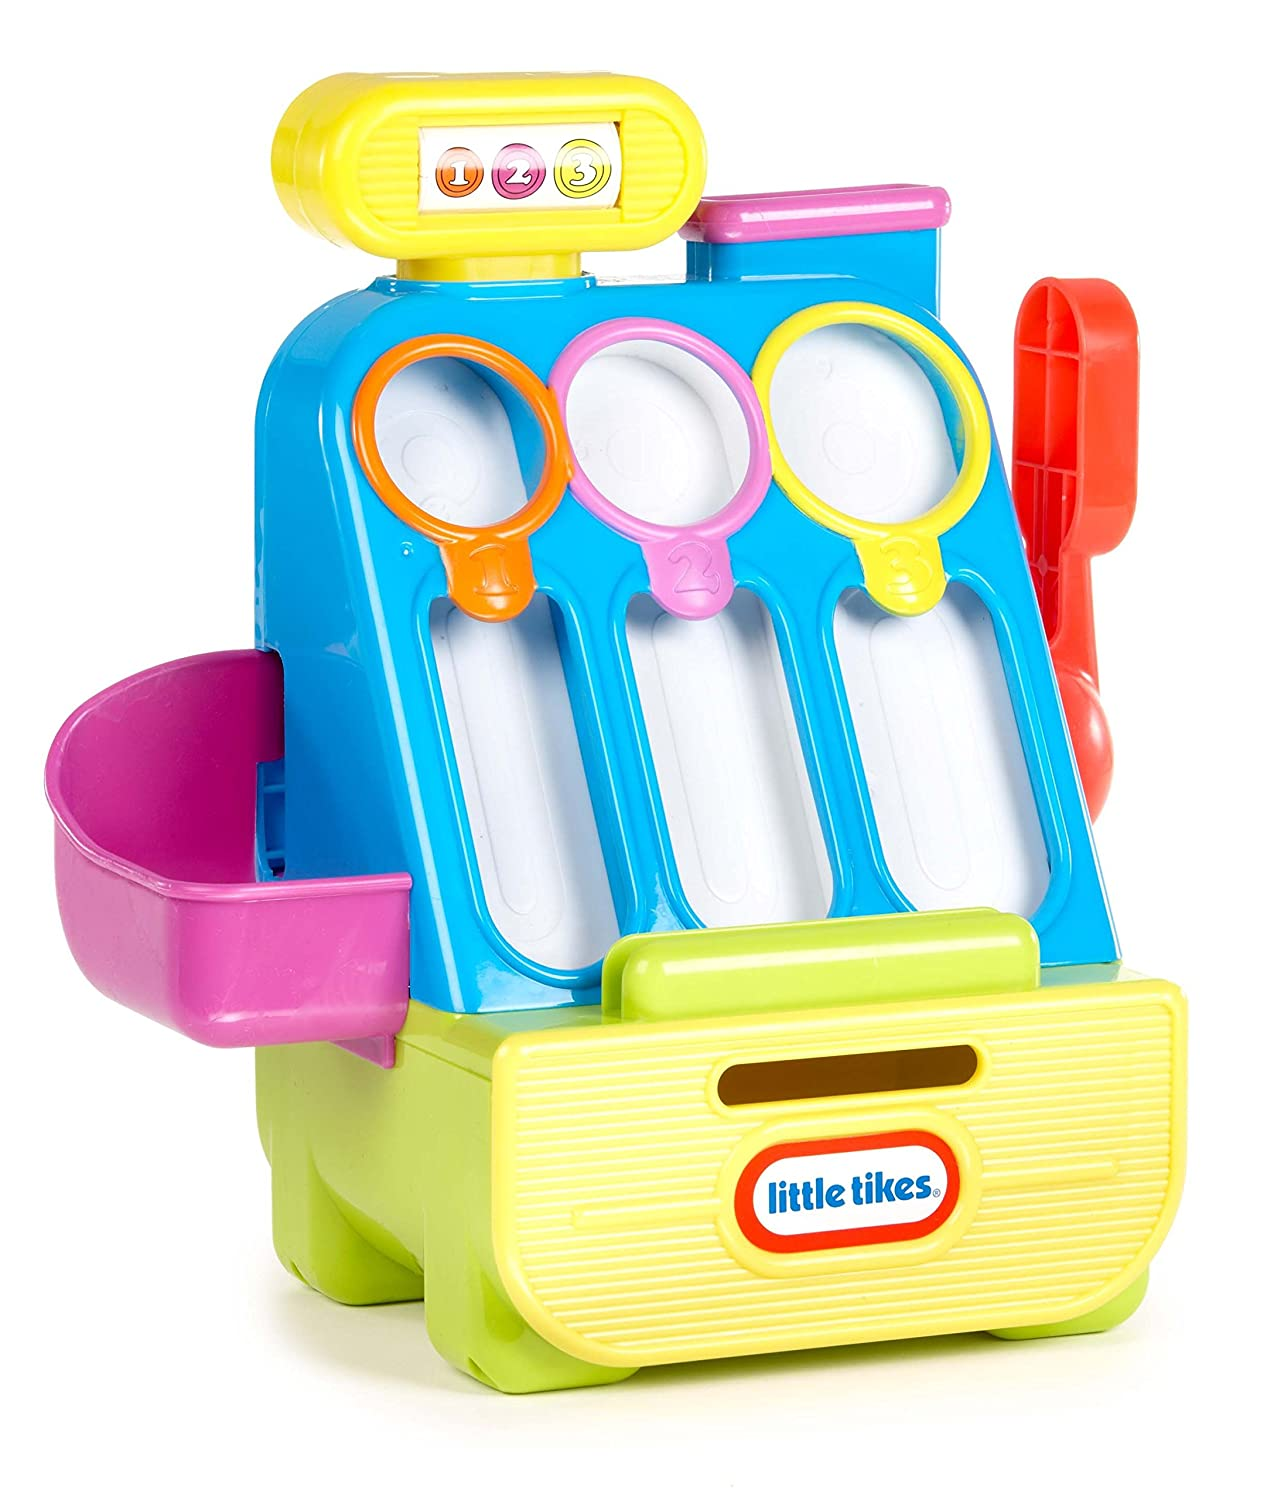 Count 'n Play Cash Register